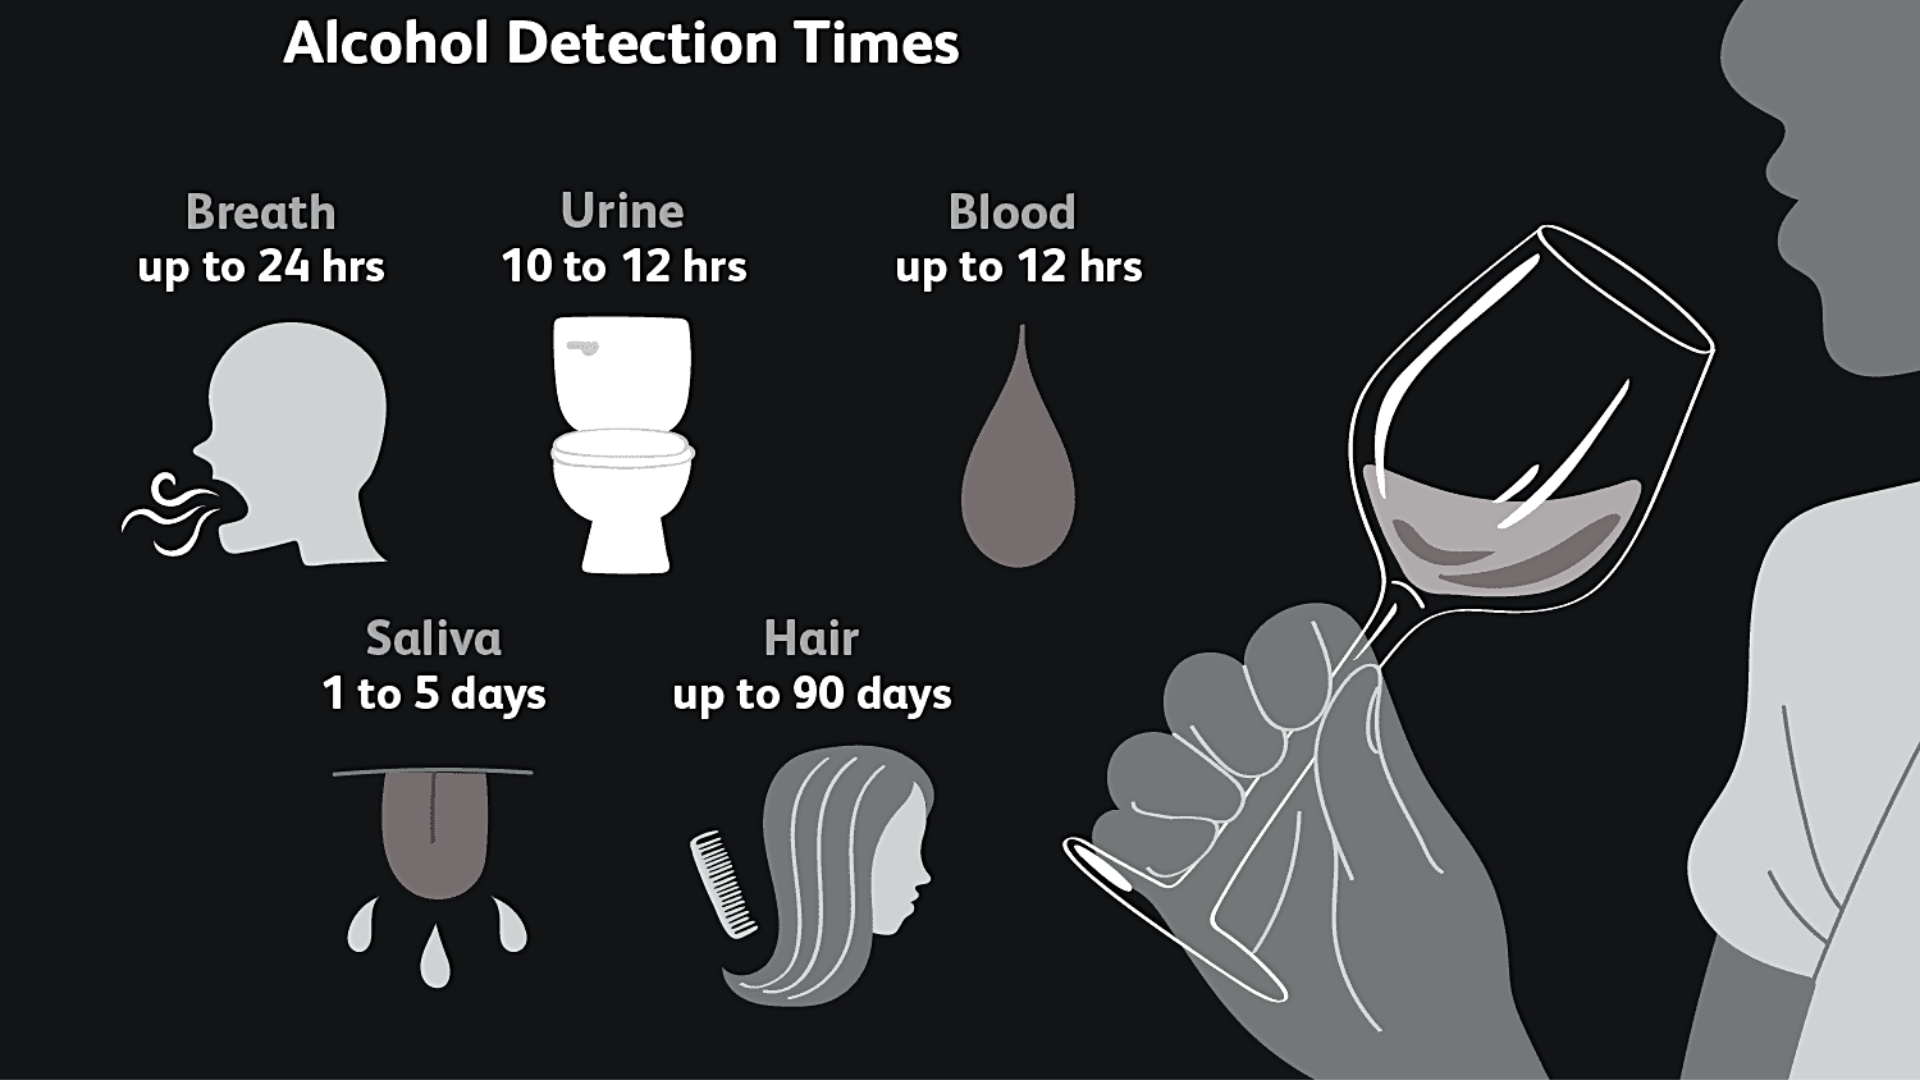 Alcohol content and detection